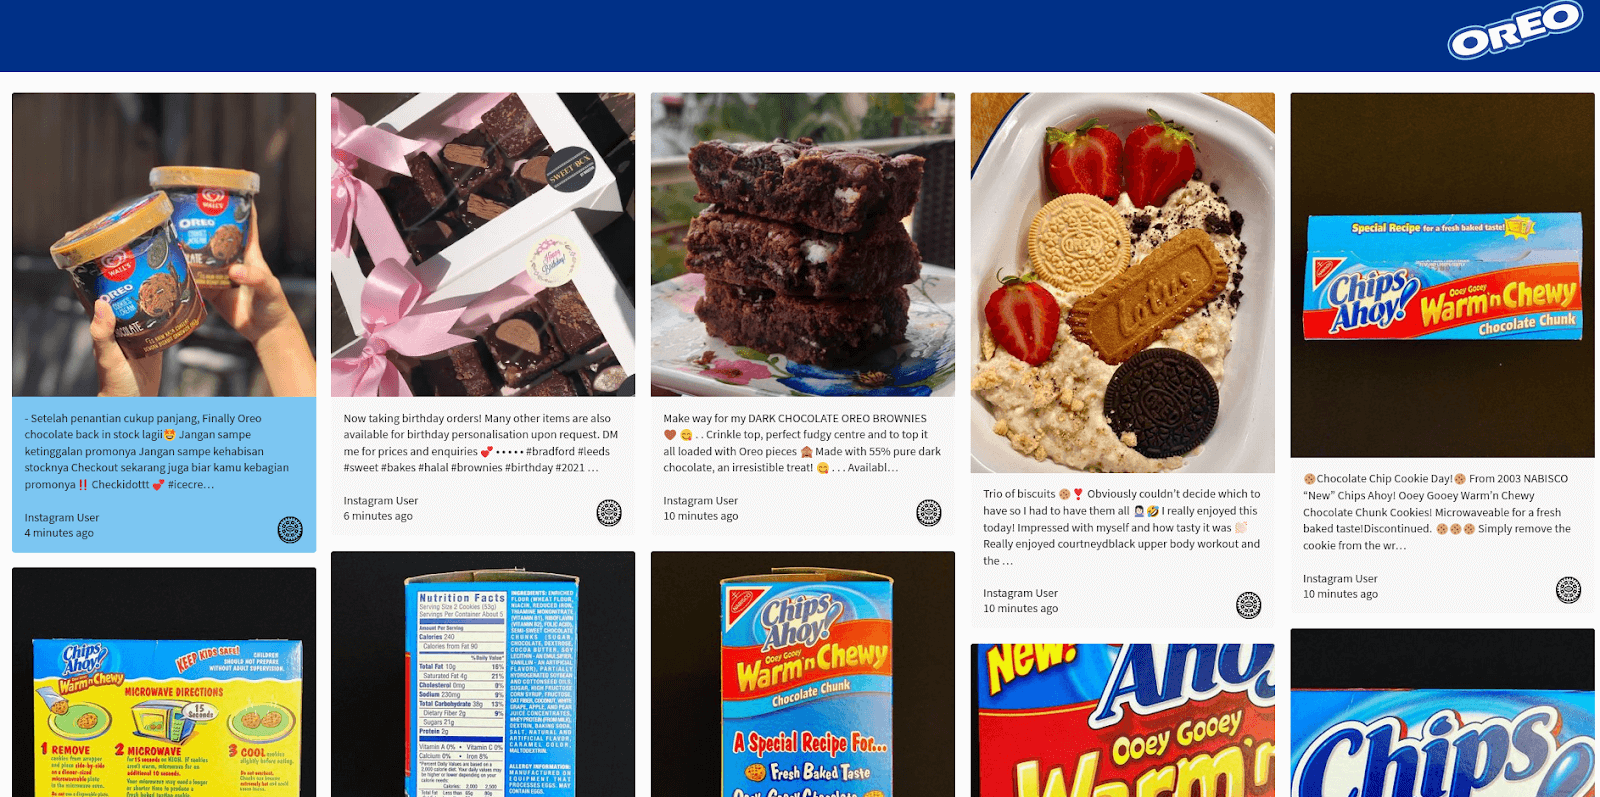 Screenshot of a social wall displaying social media posts in which icons were replaced with Oreo cookies.